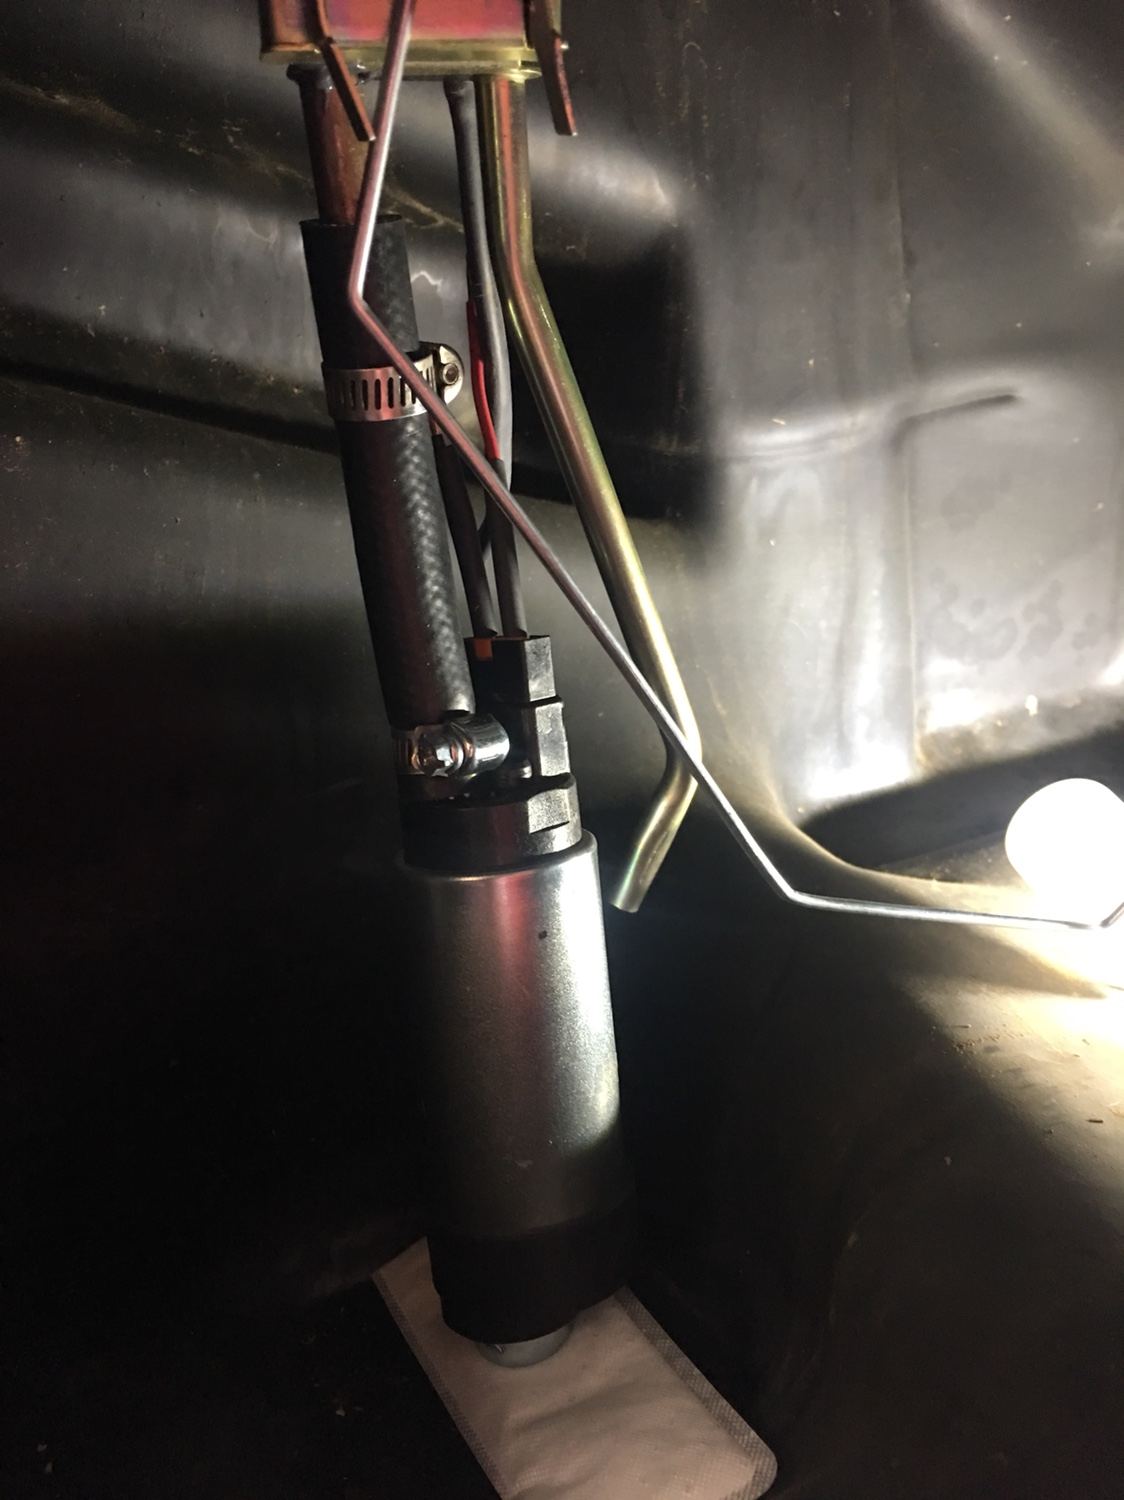 C Fda B E B D Fb on Jeep Cherokee Fuel Pump